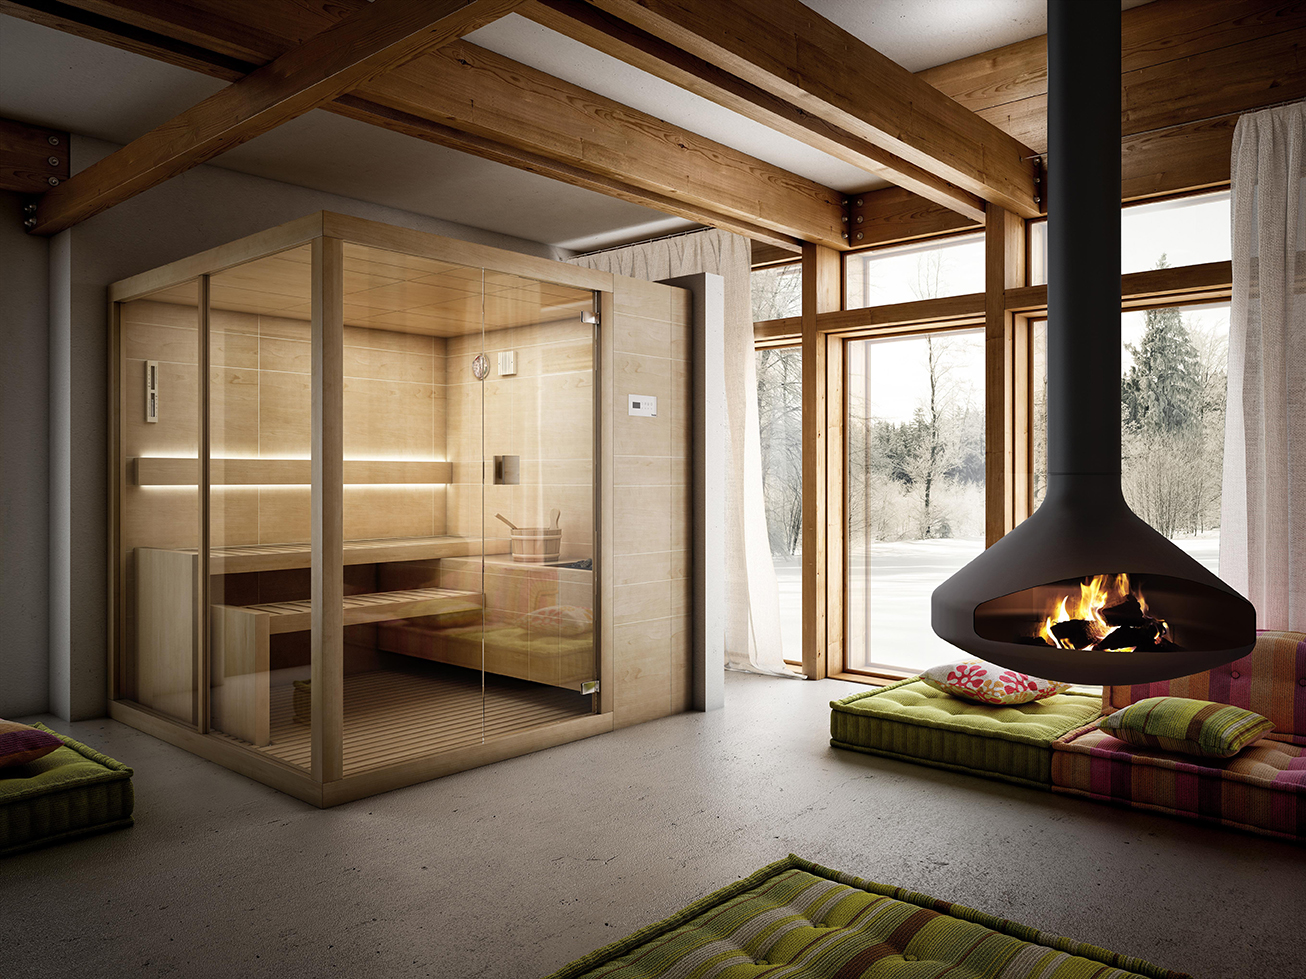 sauna aura concept cuisine salle de bain spa. Black Bedroom Furniture Sets. Home Design Ideas